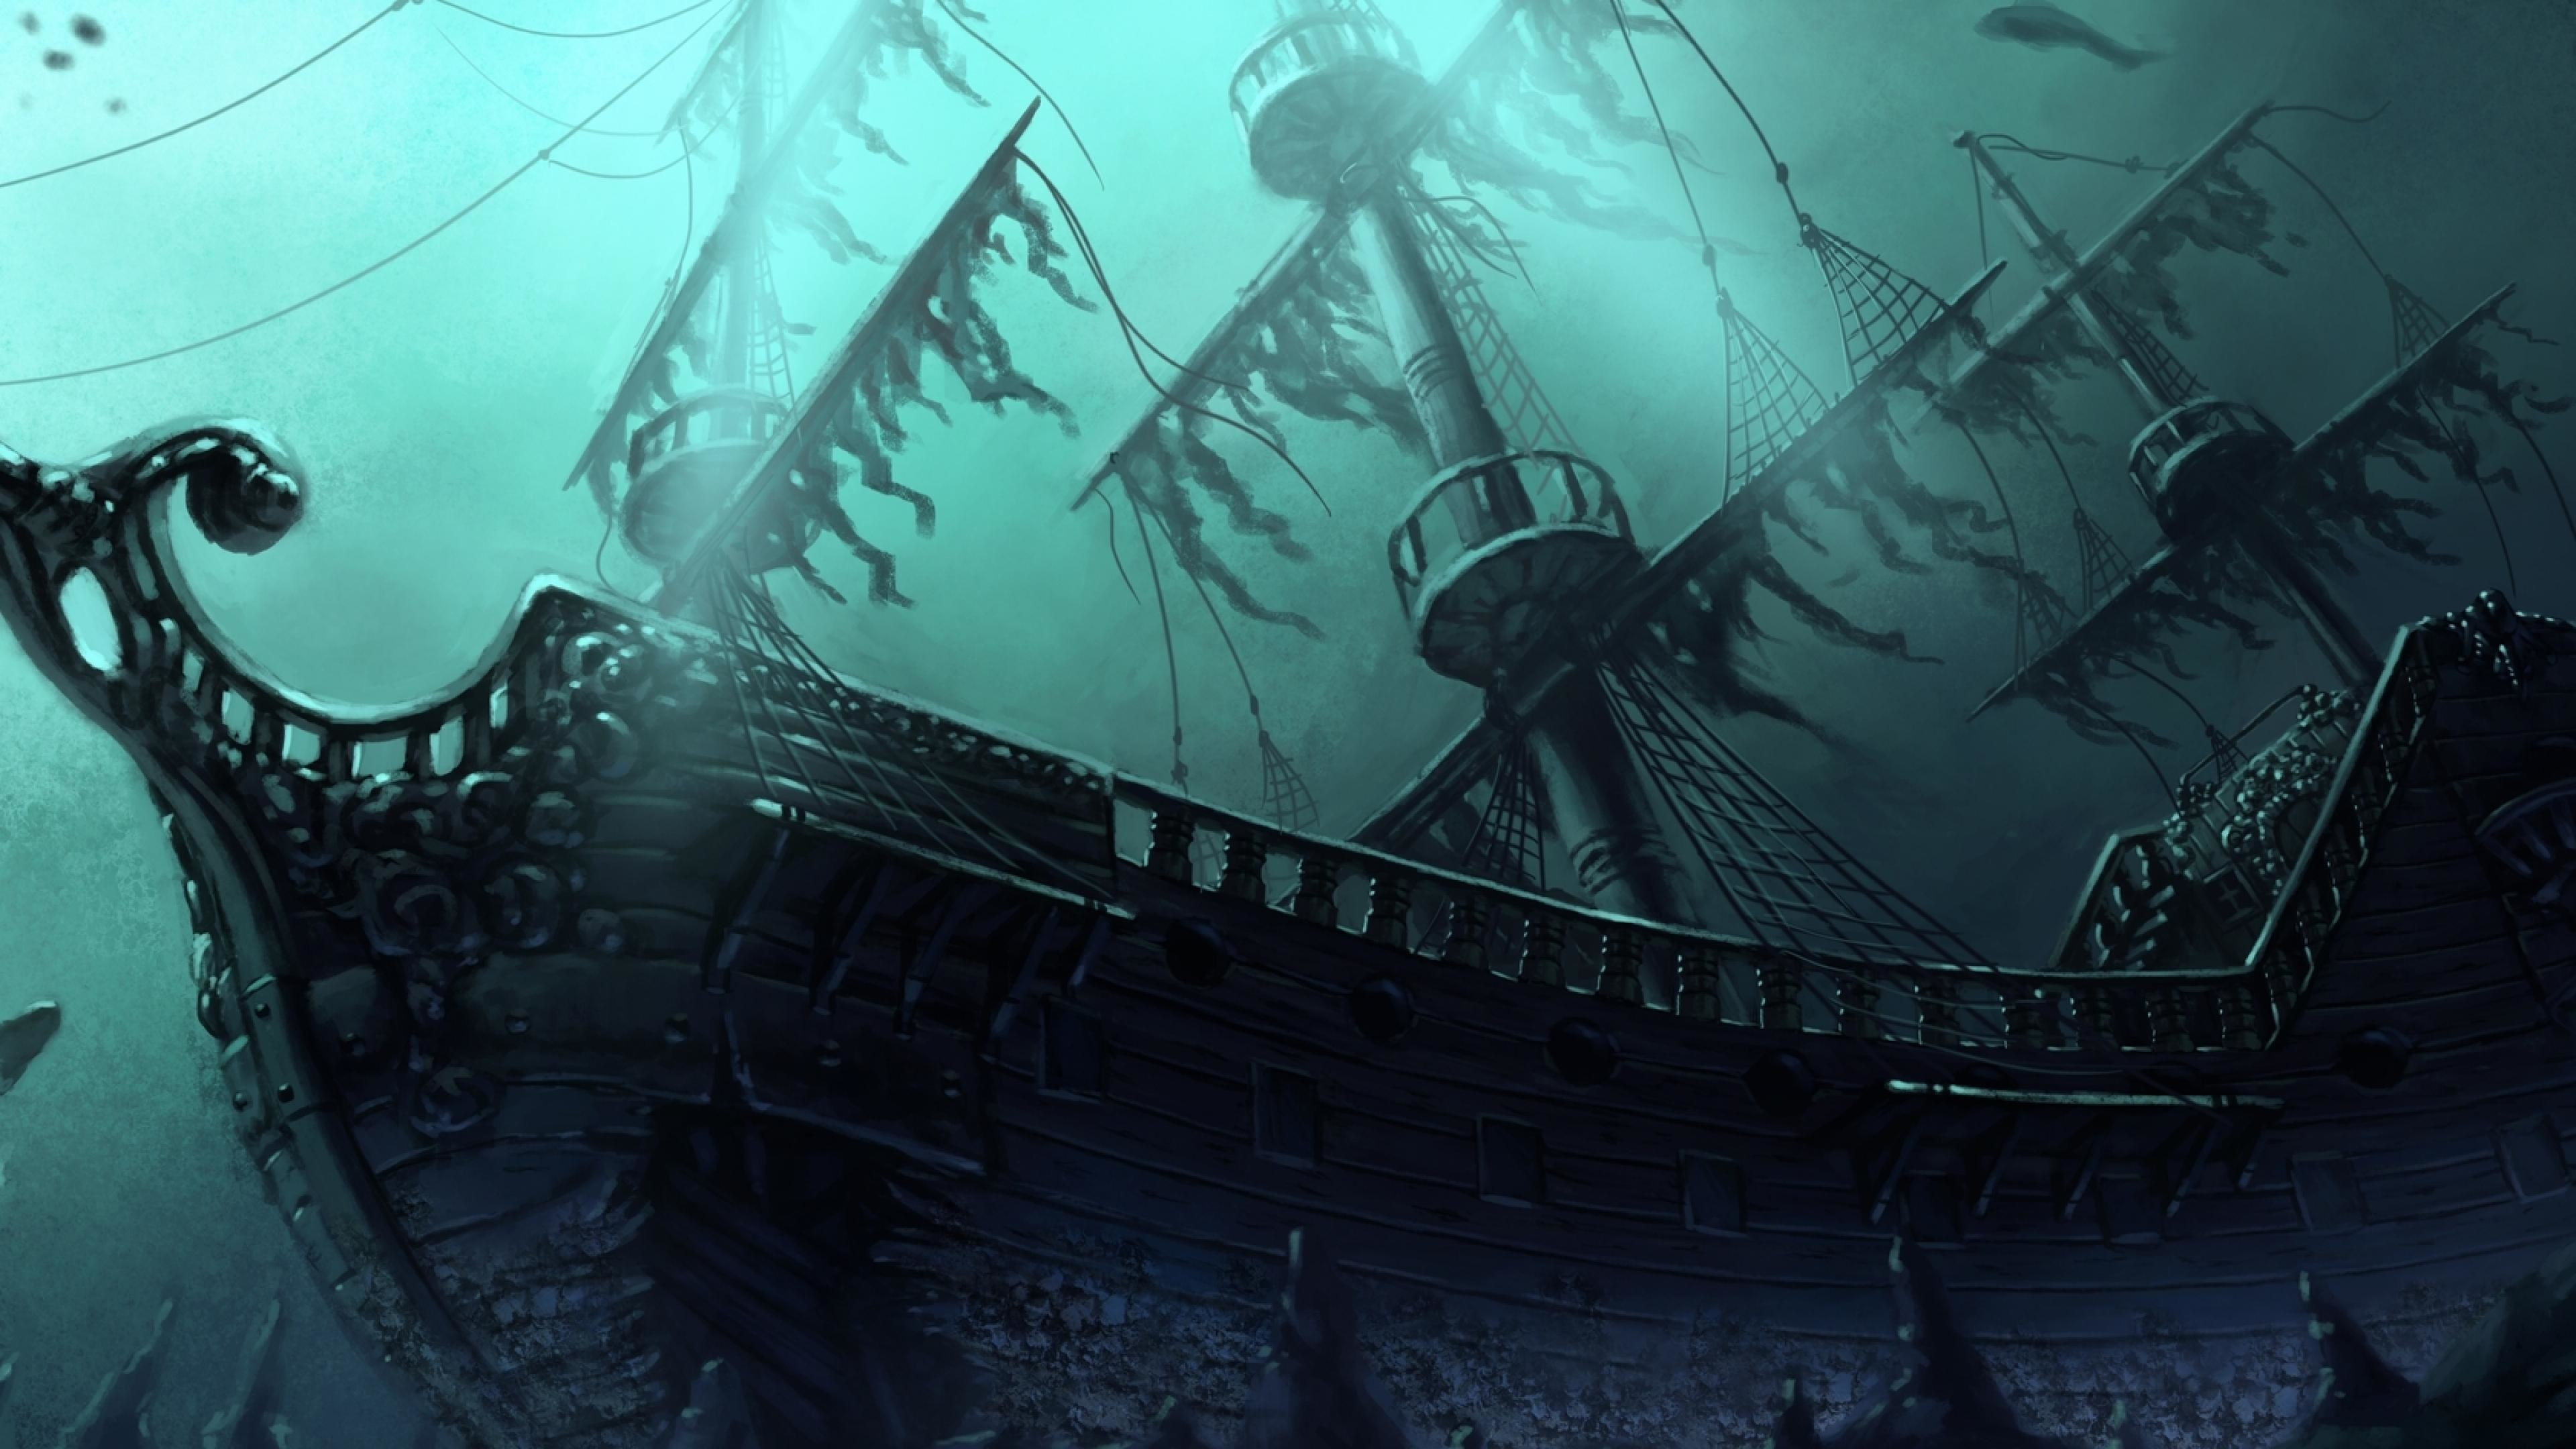 IMPERIAL JAPANESE NAVY MYSTERIES - Combined Fleet Pictures of sunken ships